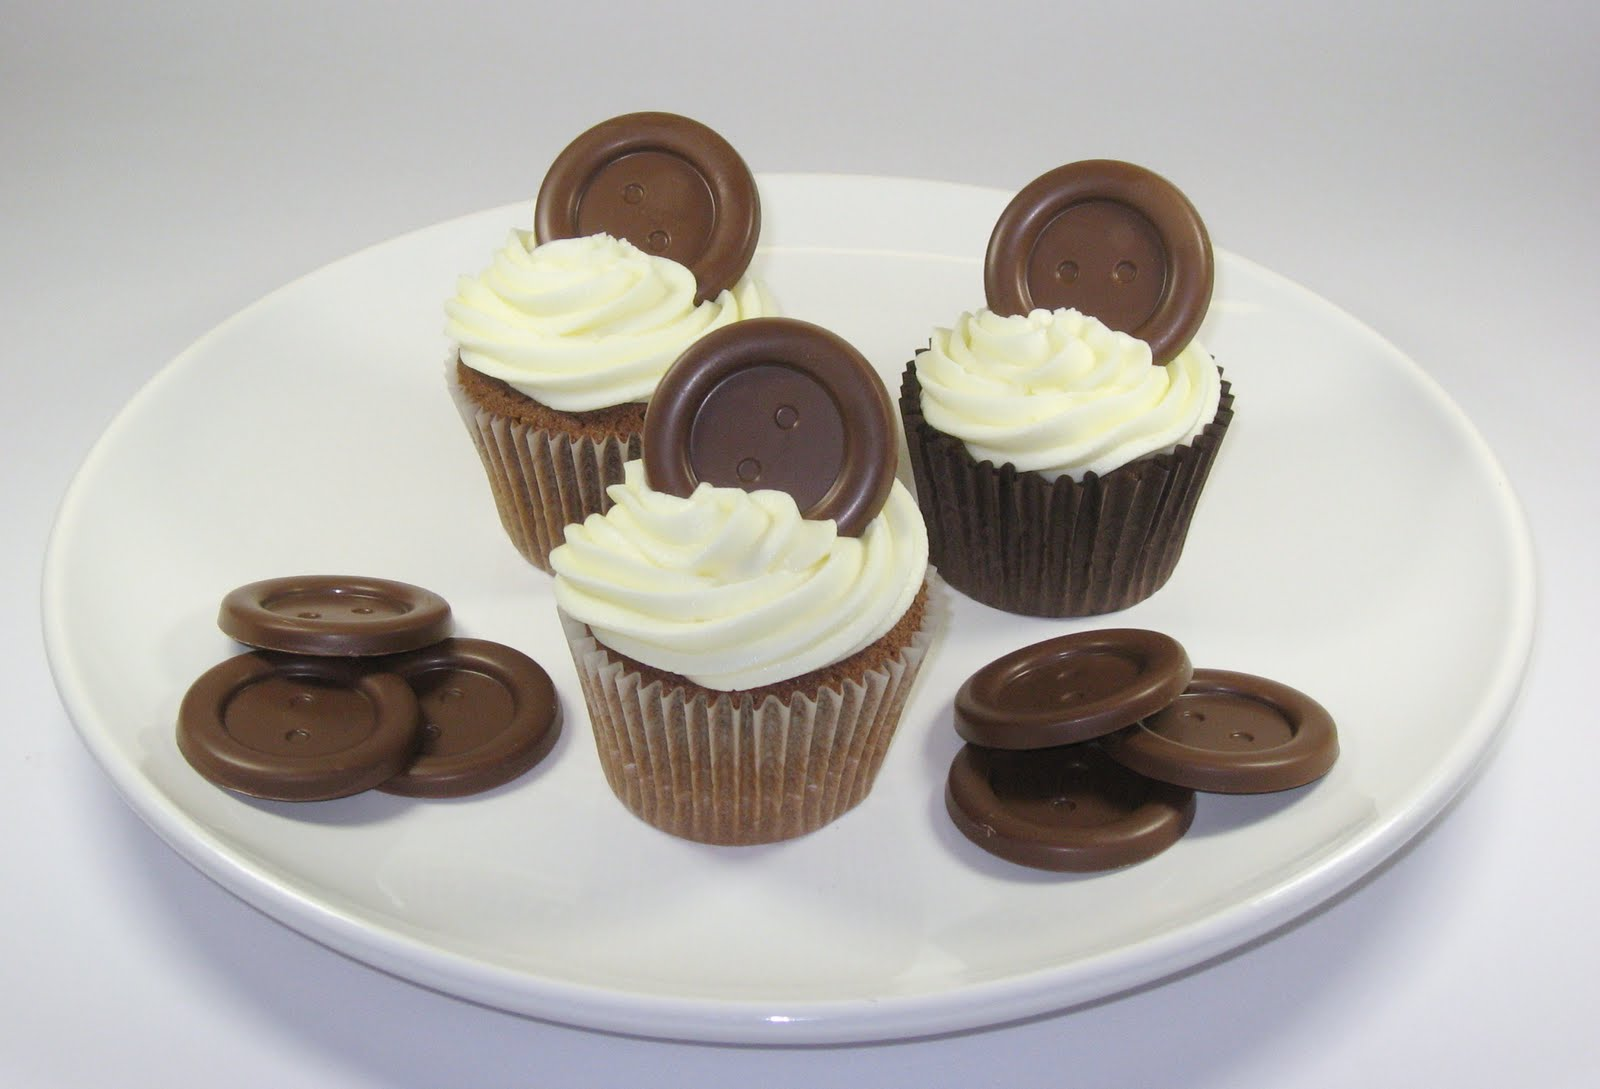 Kitchen Delights Giant Chocolate Buttons Cupcakes - National Cupcake Week 12-18 September 2011 & Kitchen Delights: Giant Chocolate Buttons Cupcakes - National ...